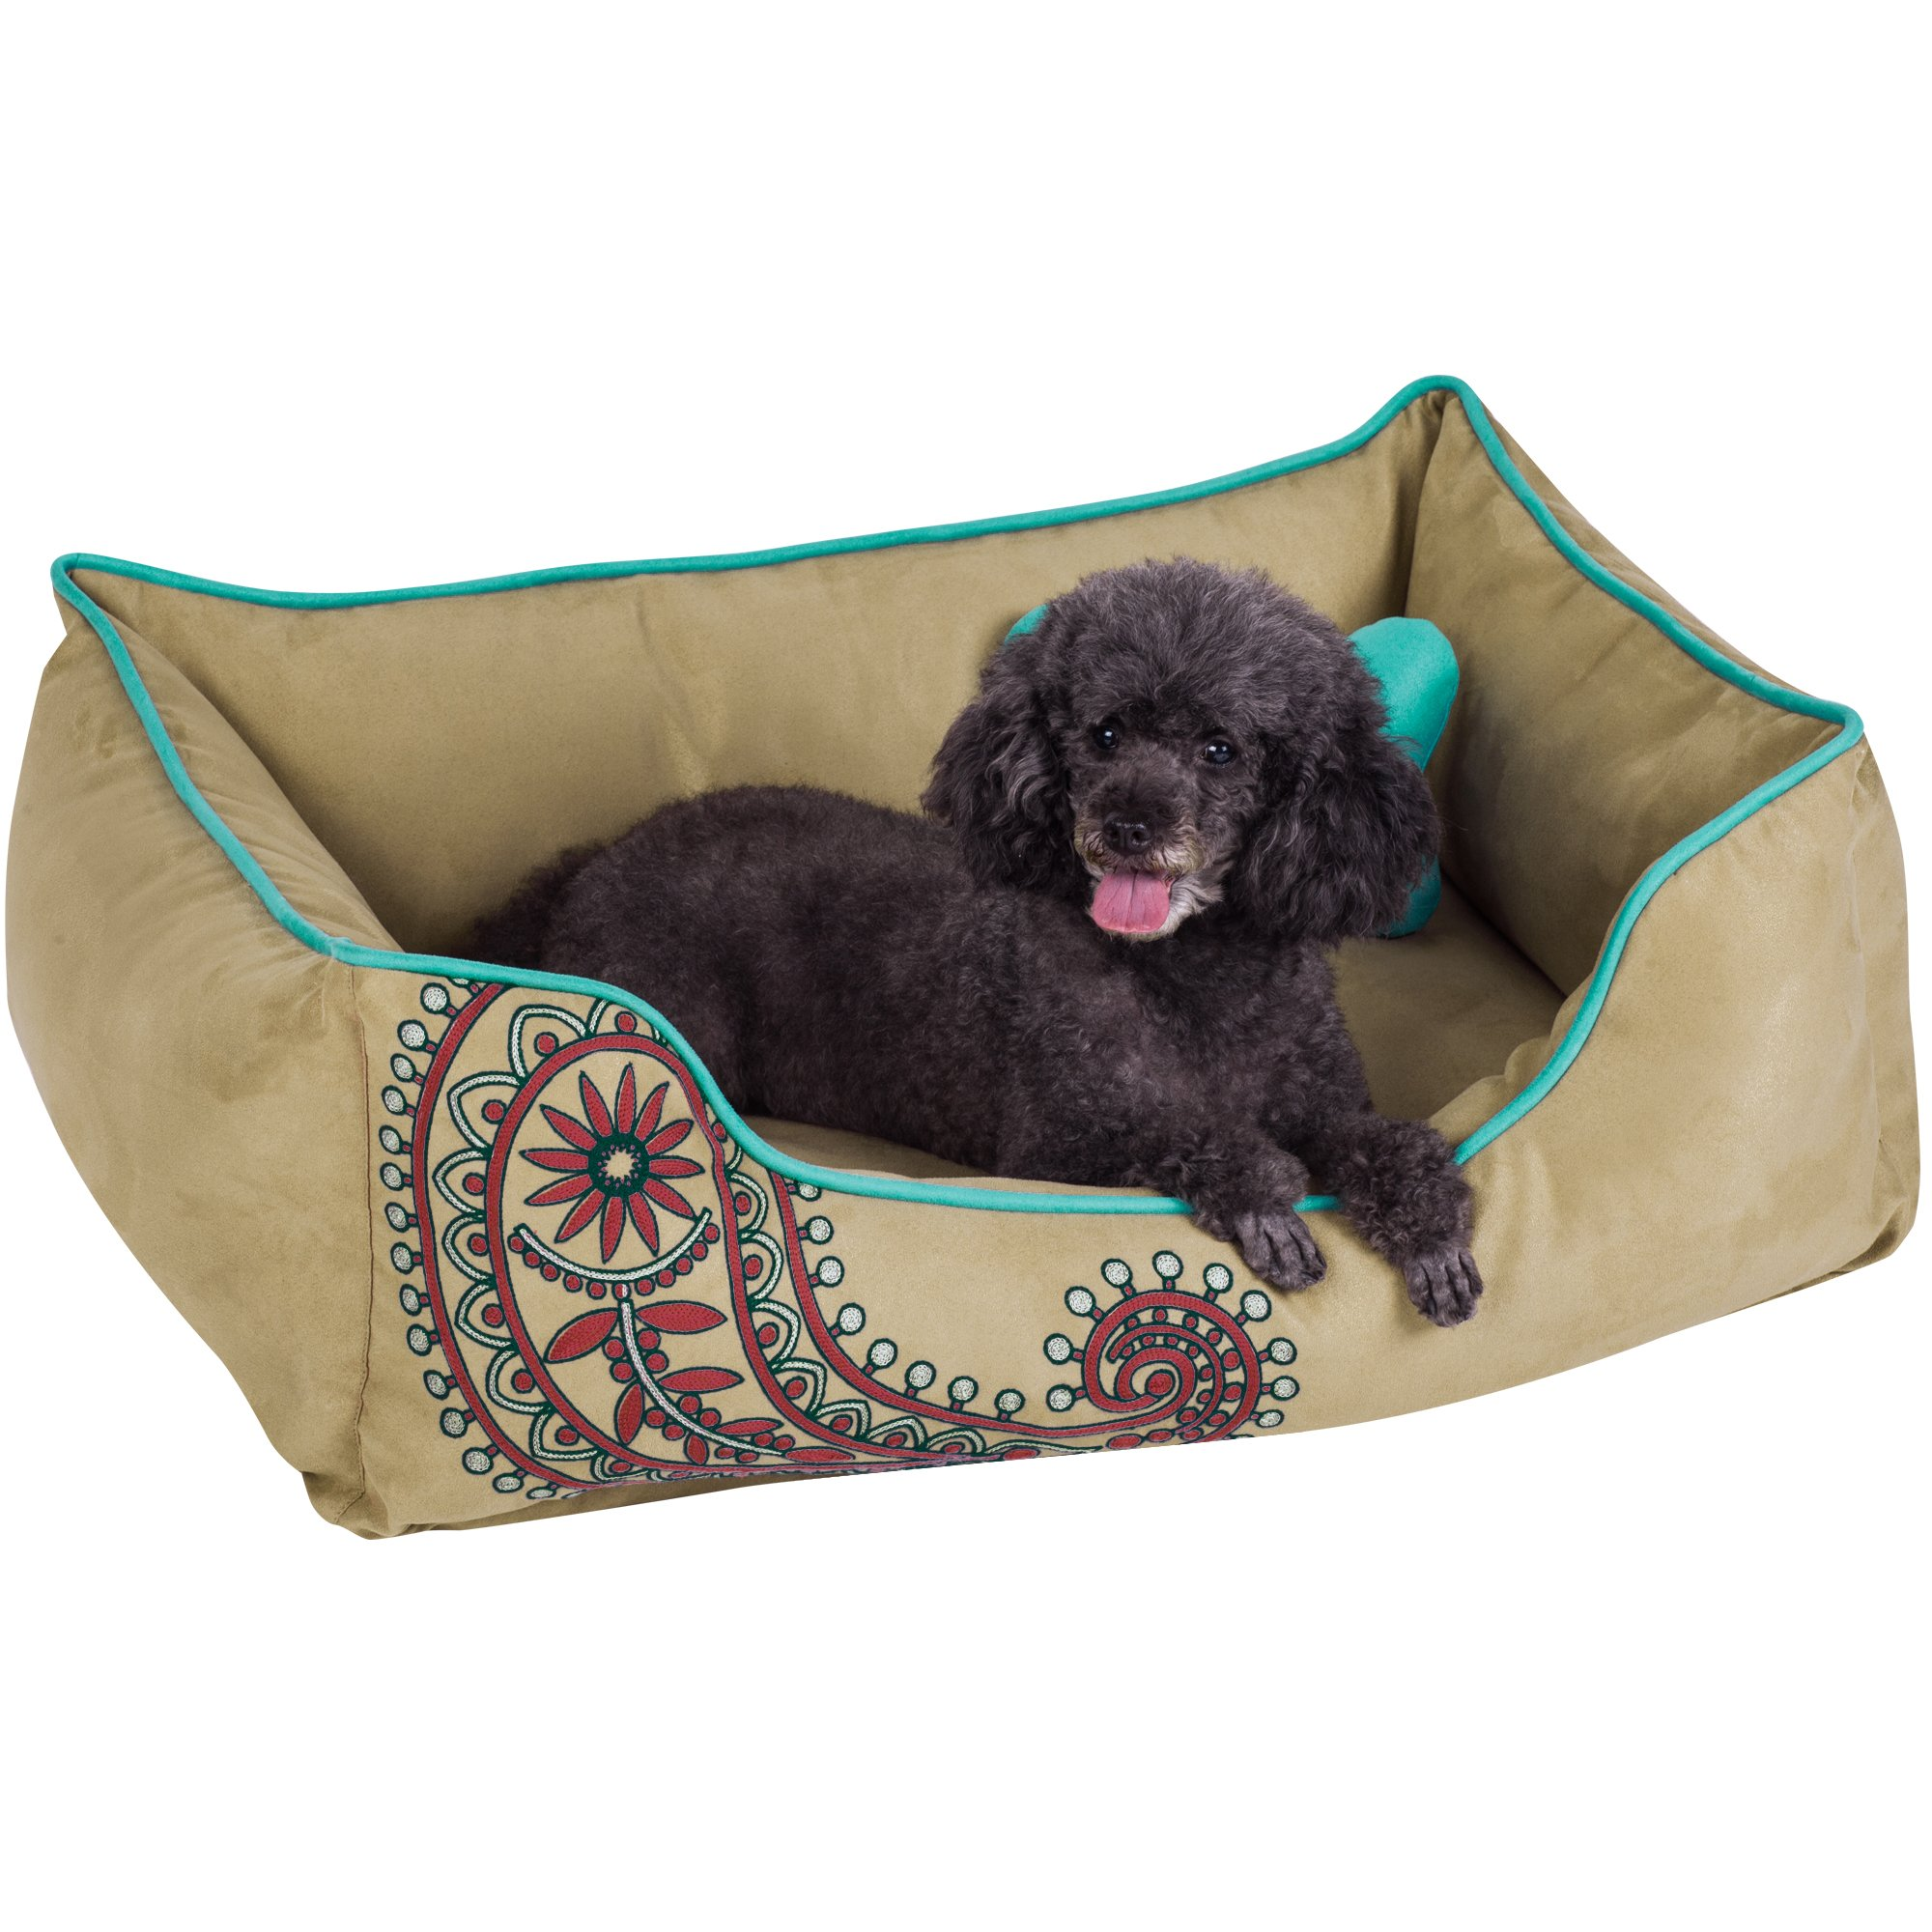 Blueberry Pet Heavy Duty Microsuede Overstuffed Bolster Lounge Dog Bed, Removable & Washable Cover w/YKK Zippers, 34'' x 24'' x 12'', 11 Lbs, Champagne Beige Embroidered Paisley Beds for Cats & Dogs